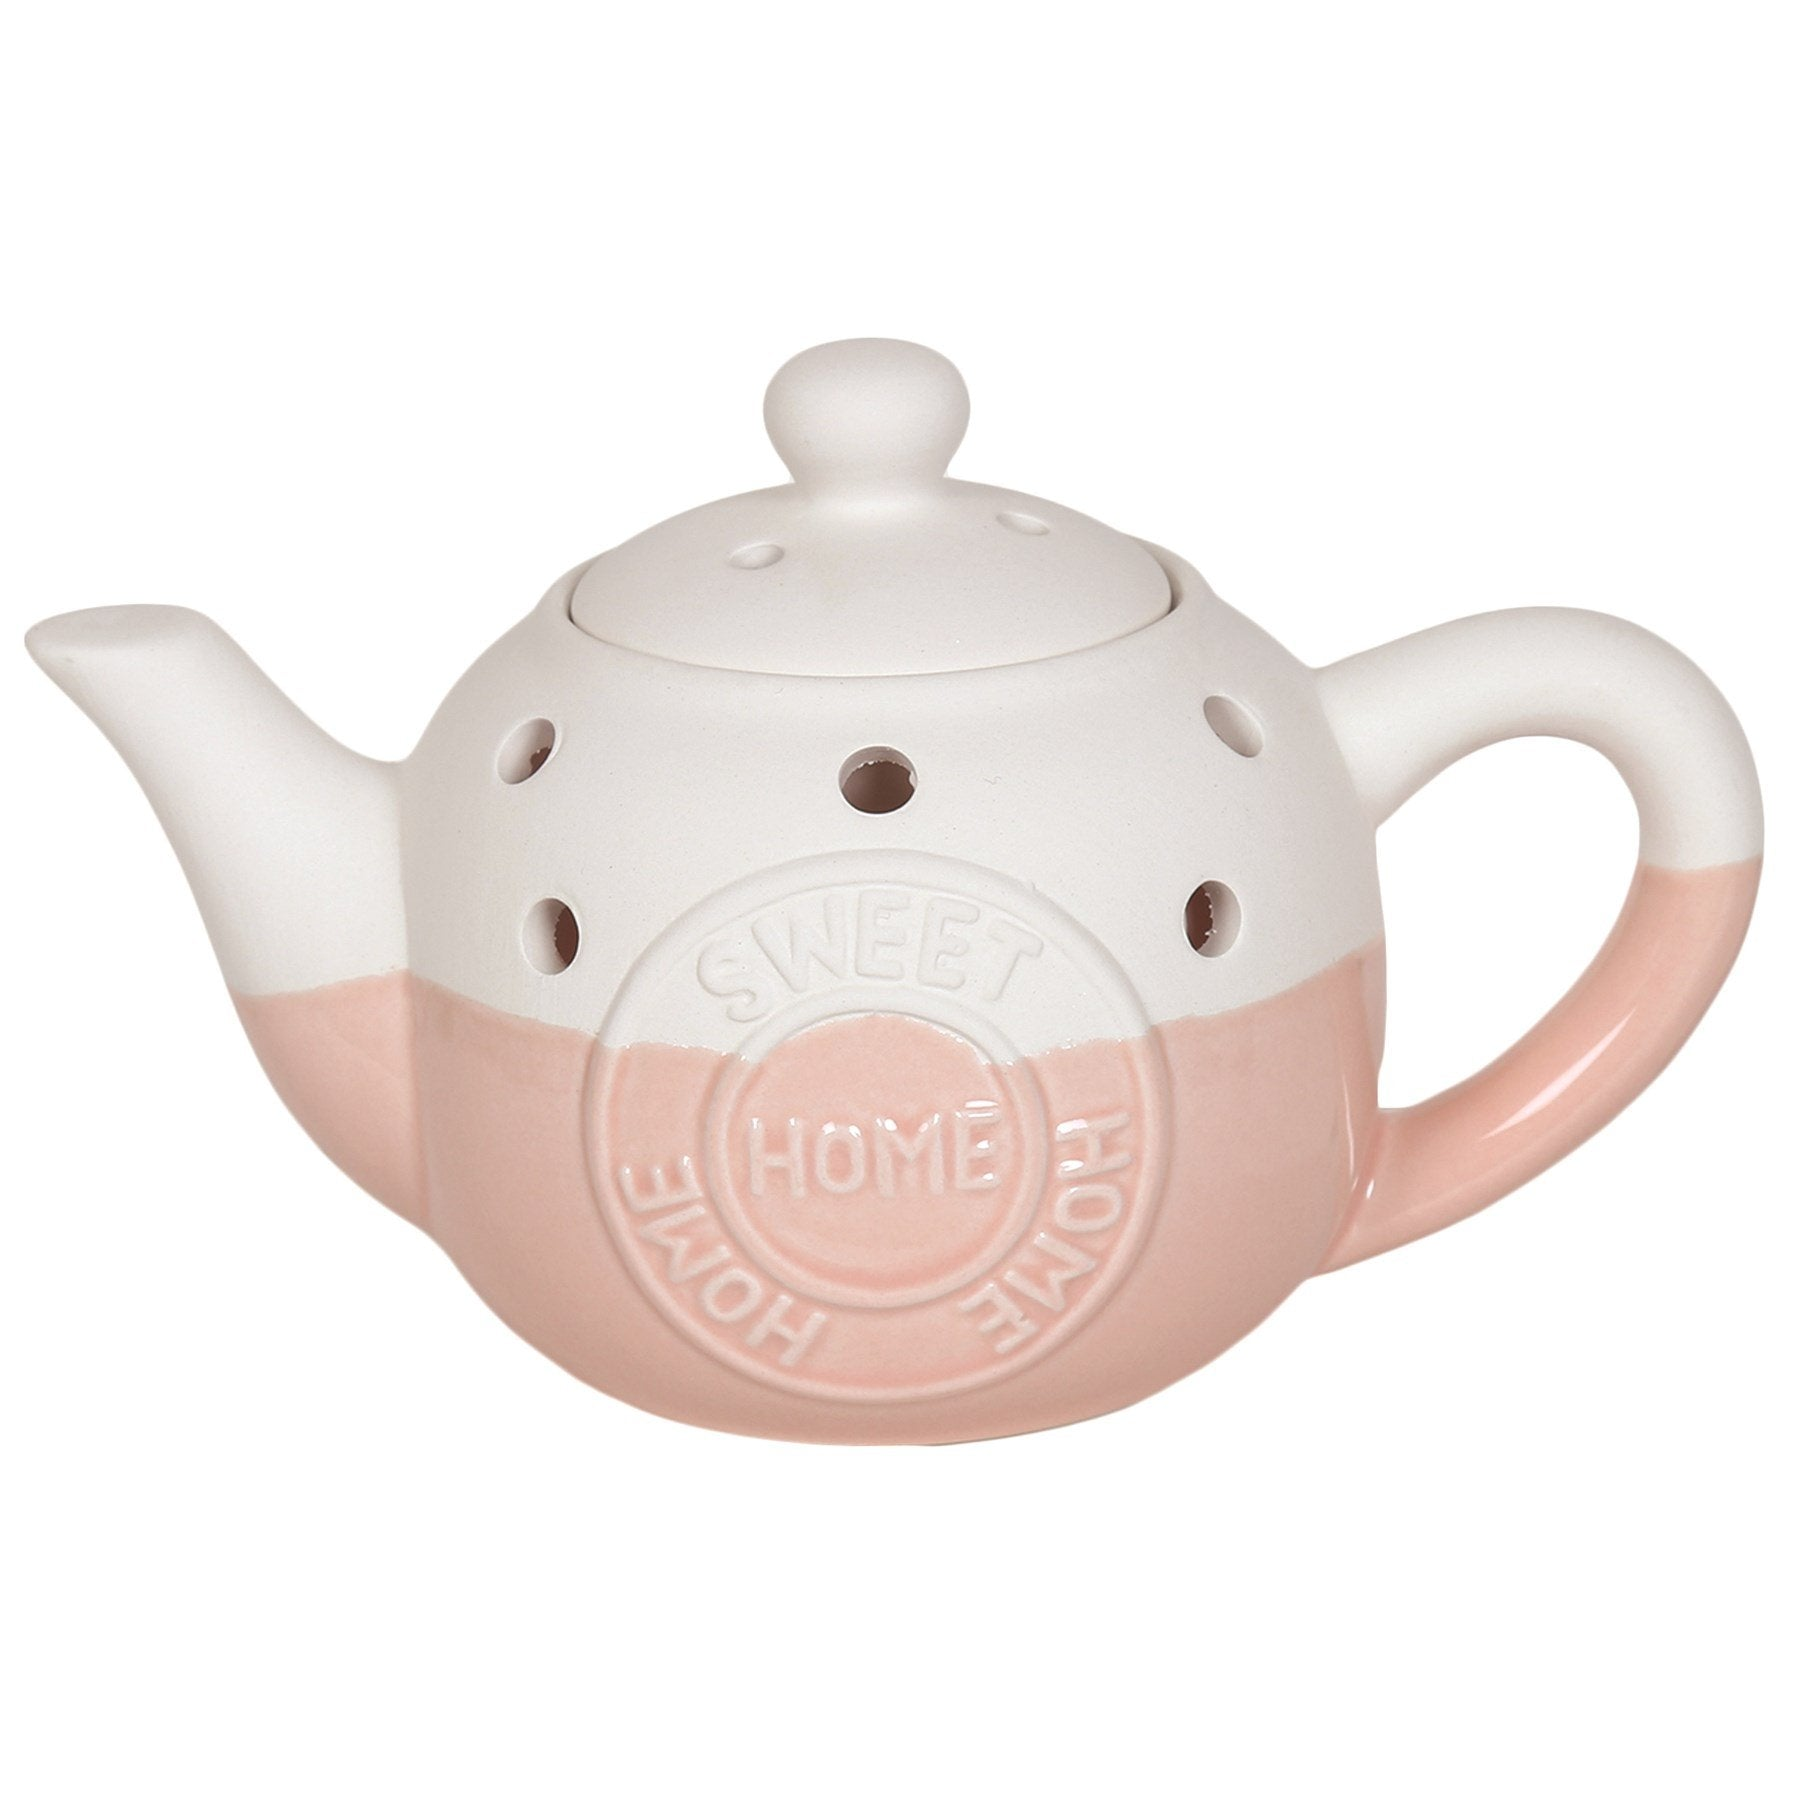 Home Sweet Home Teapot Wax/Oil Burner Electric Burner Aromatize Pink